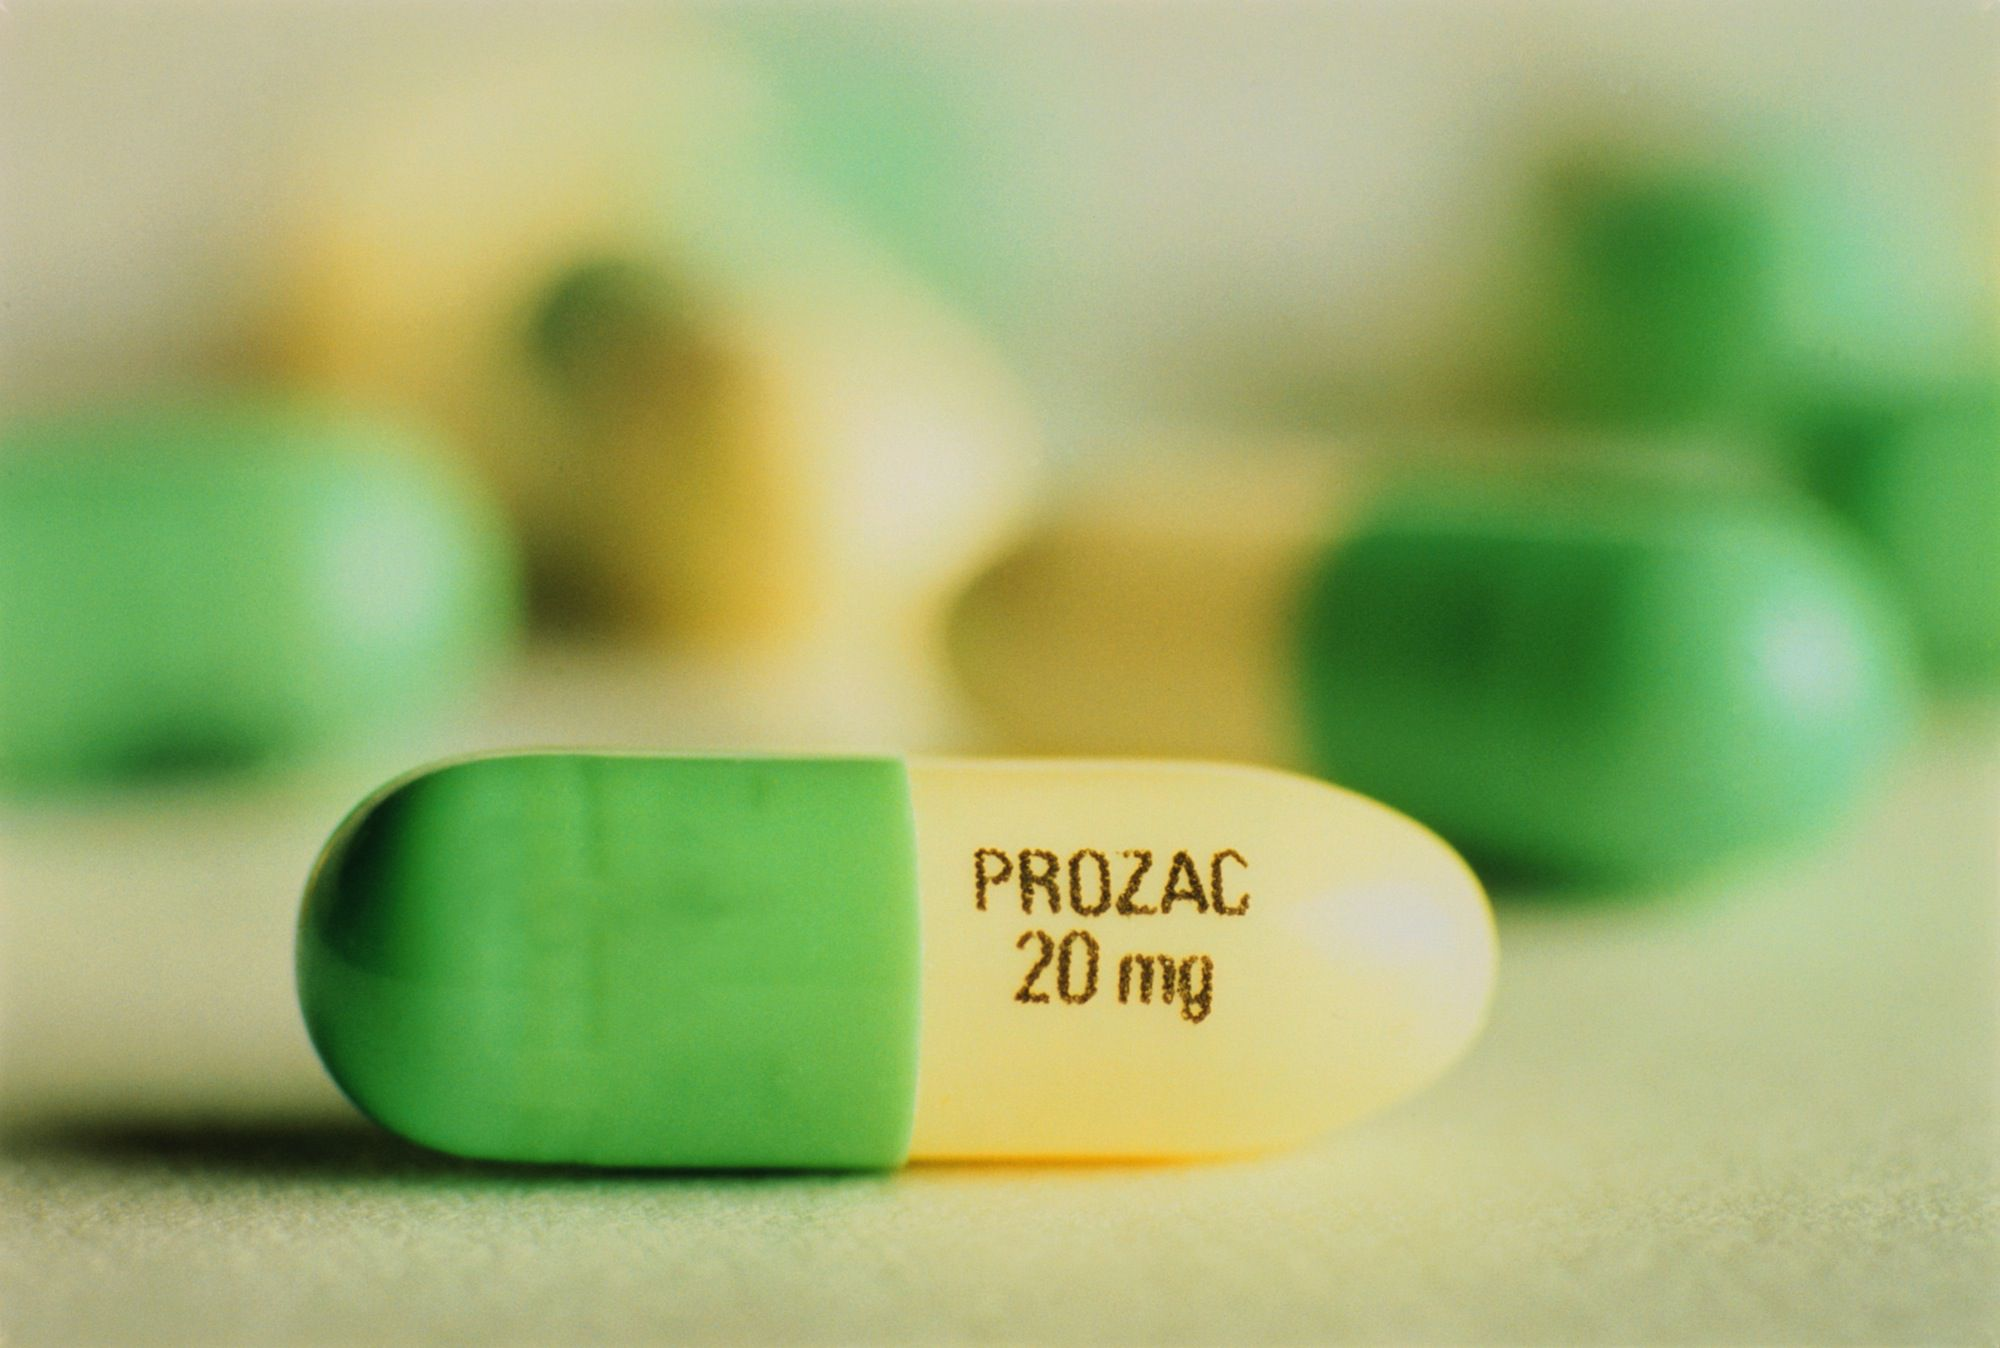 Tips to Reduce Antidepressant Withdrawal Symptoms